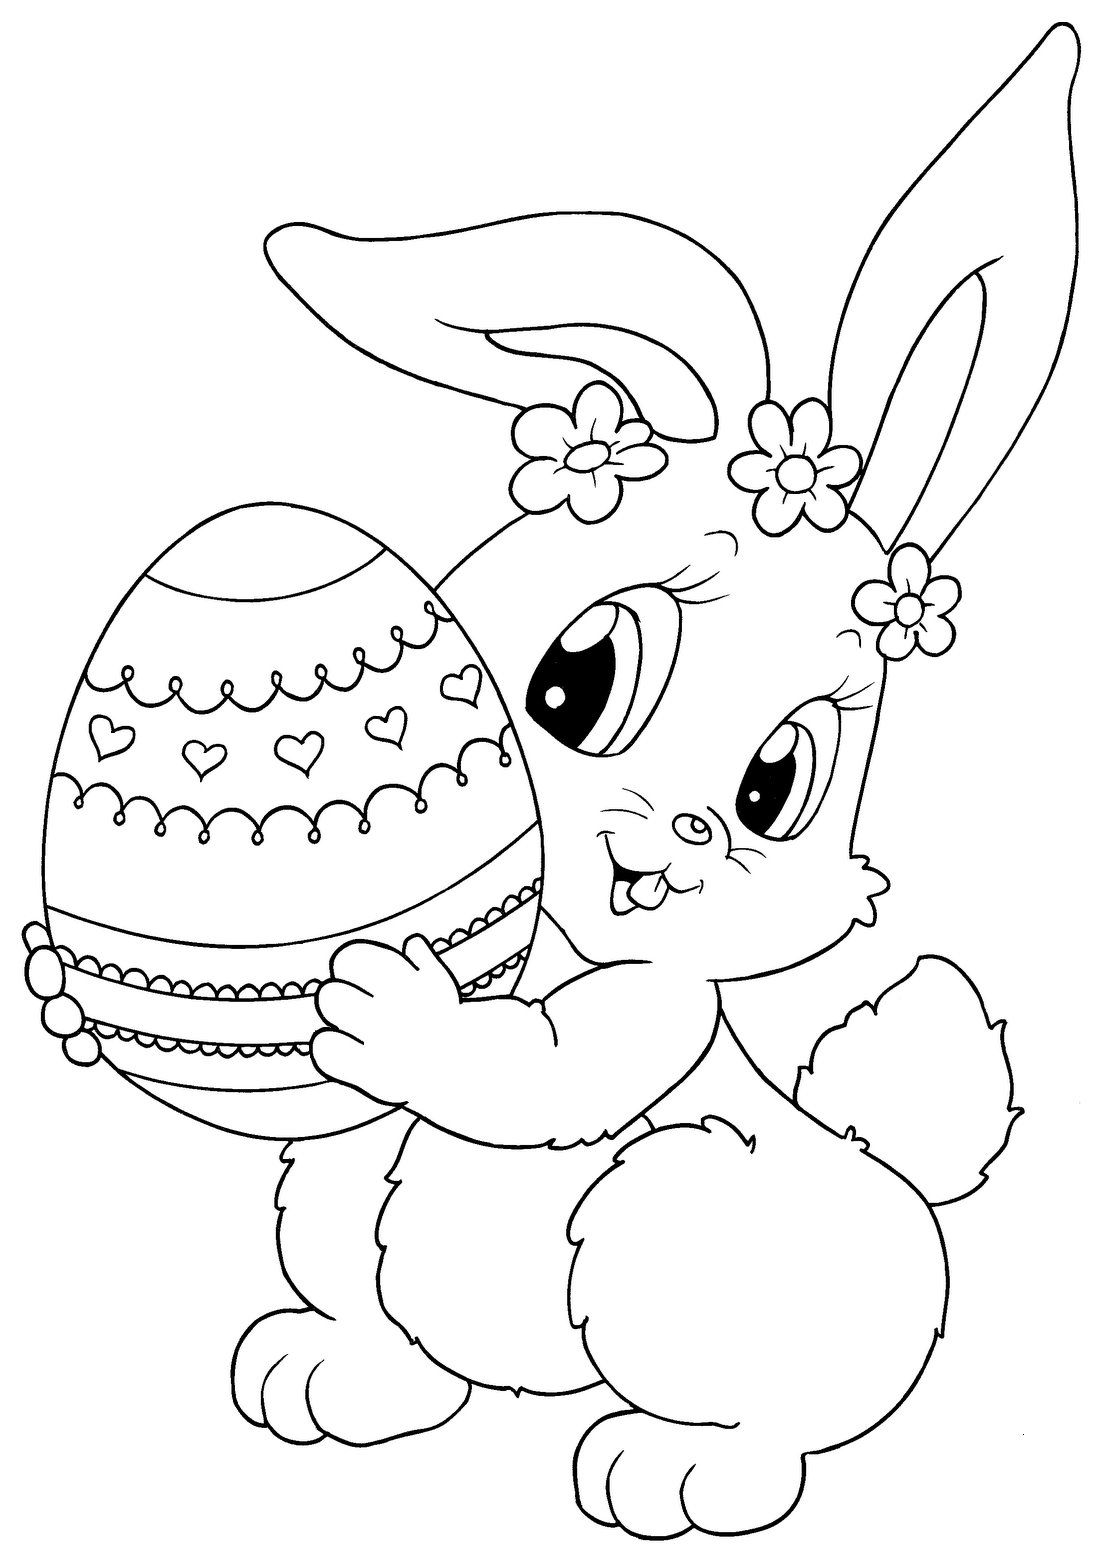 Printable Colouring In Pictures For Easter : Top 15 Free Printable Easter Bunny Coloring Pages Online Easter colouring, Easter and Easter bunny